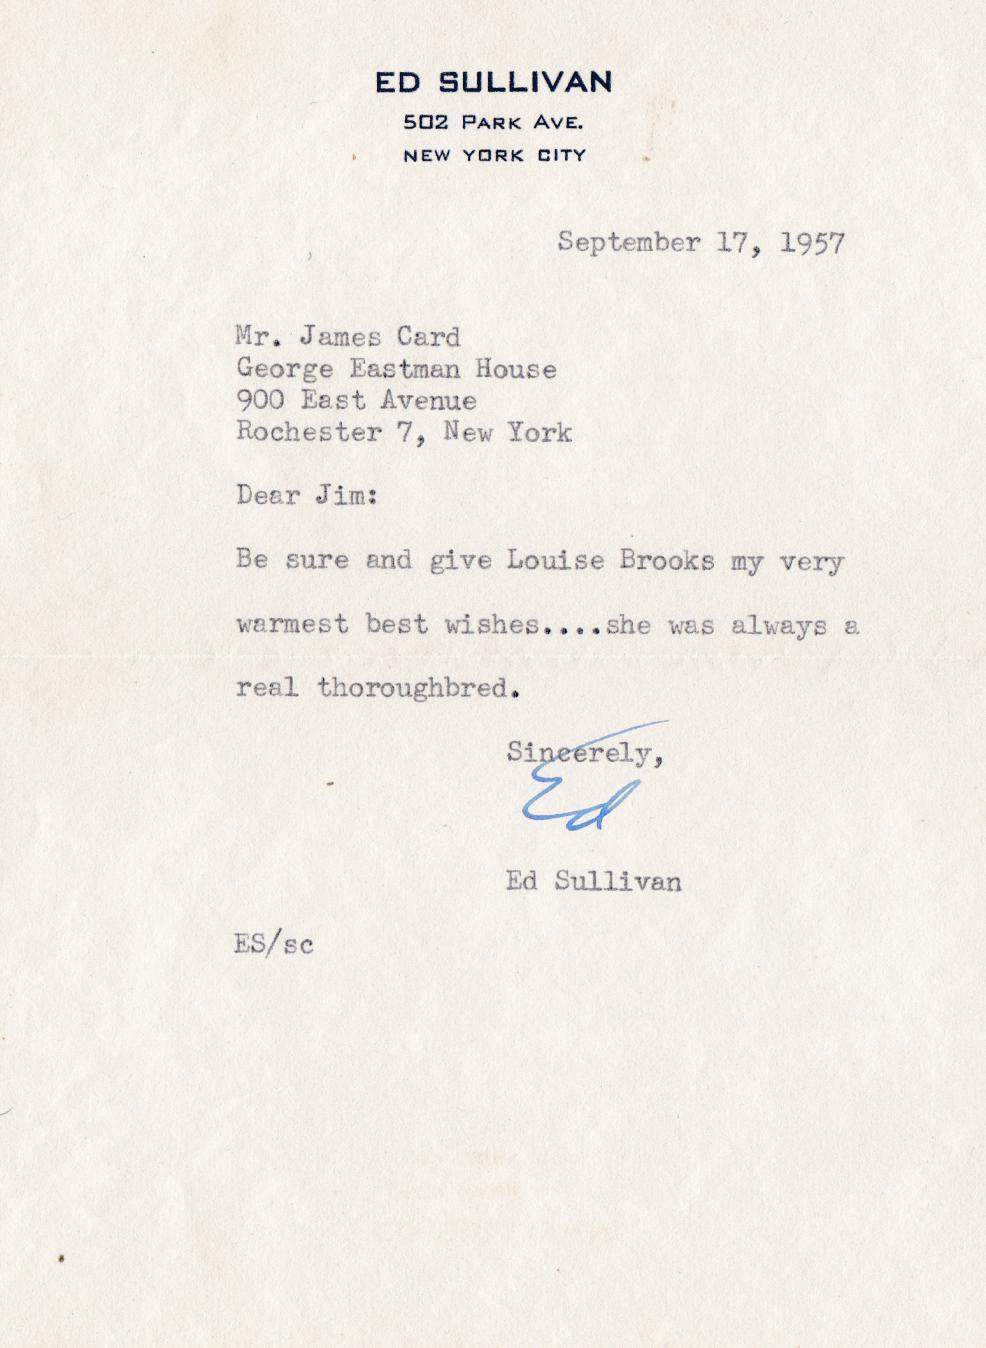 1957 Letter from Ed Sullivan to James Card, about Louise Brooks